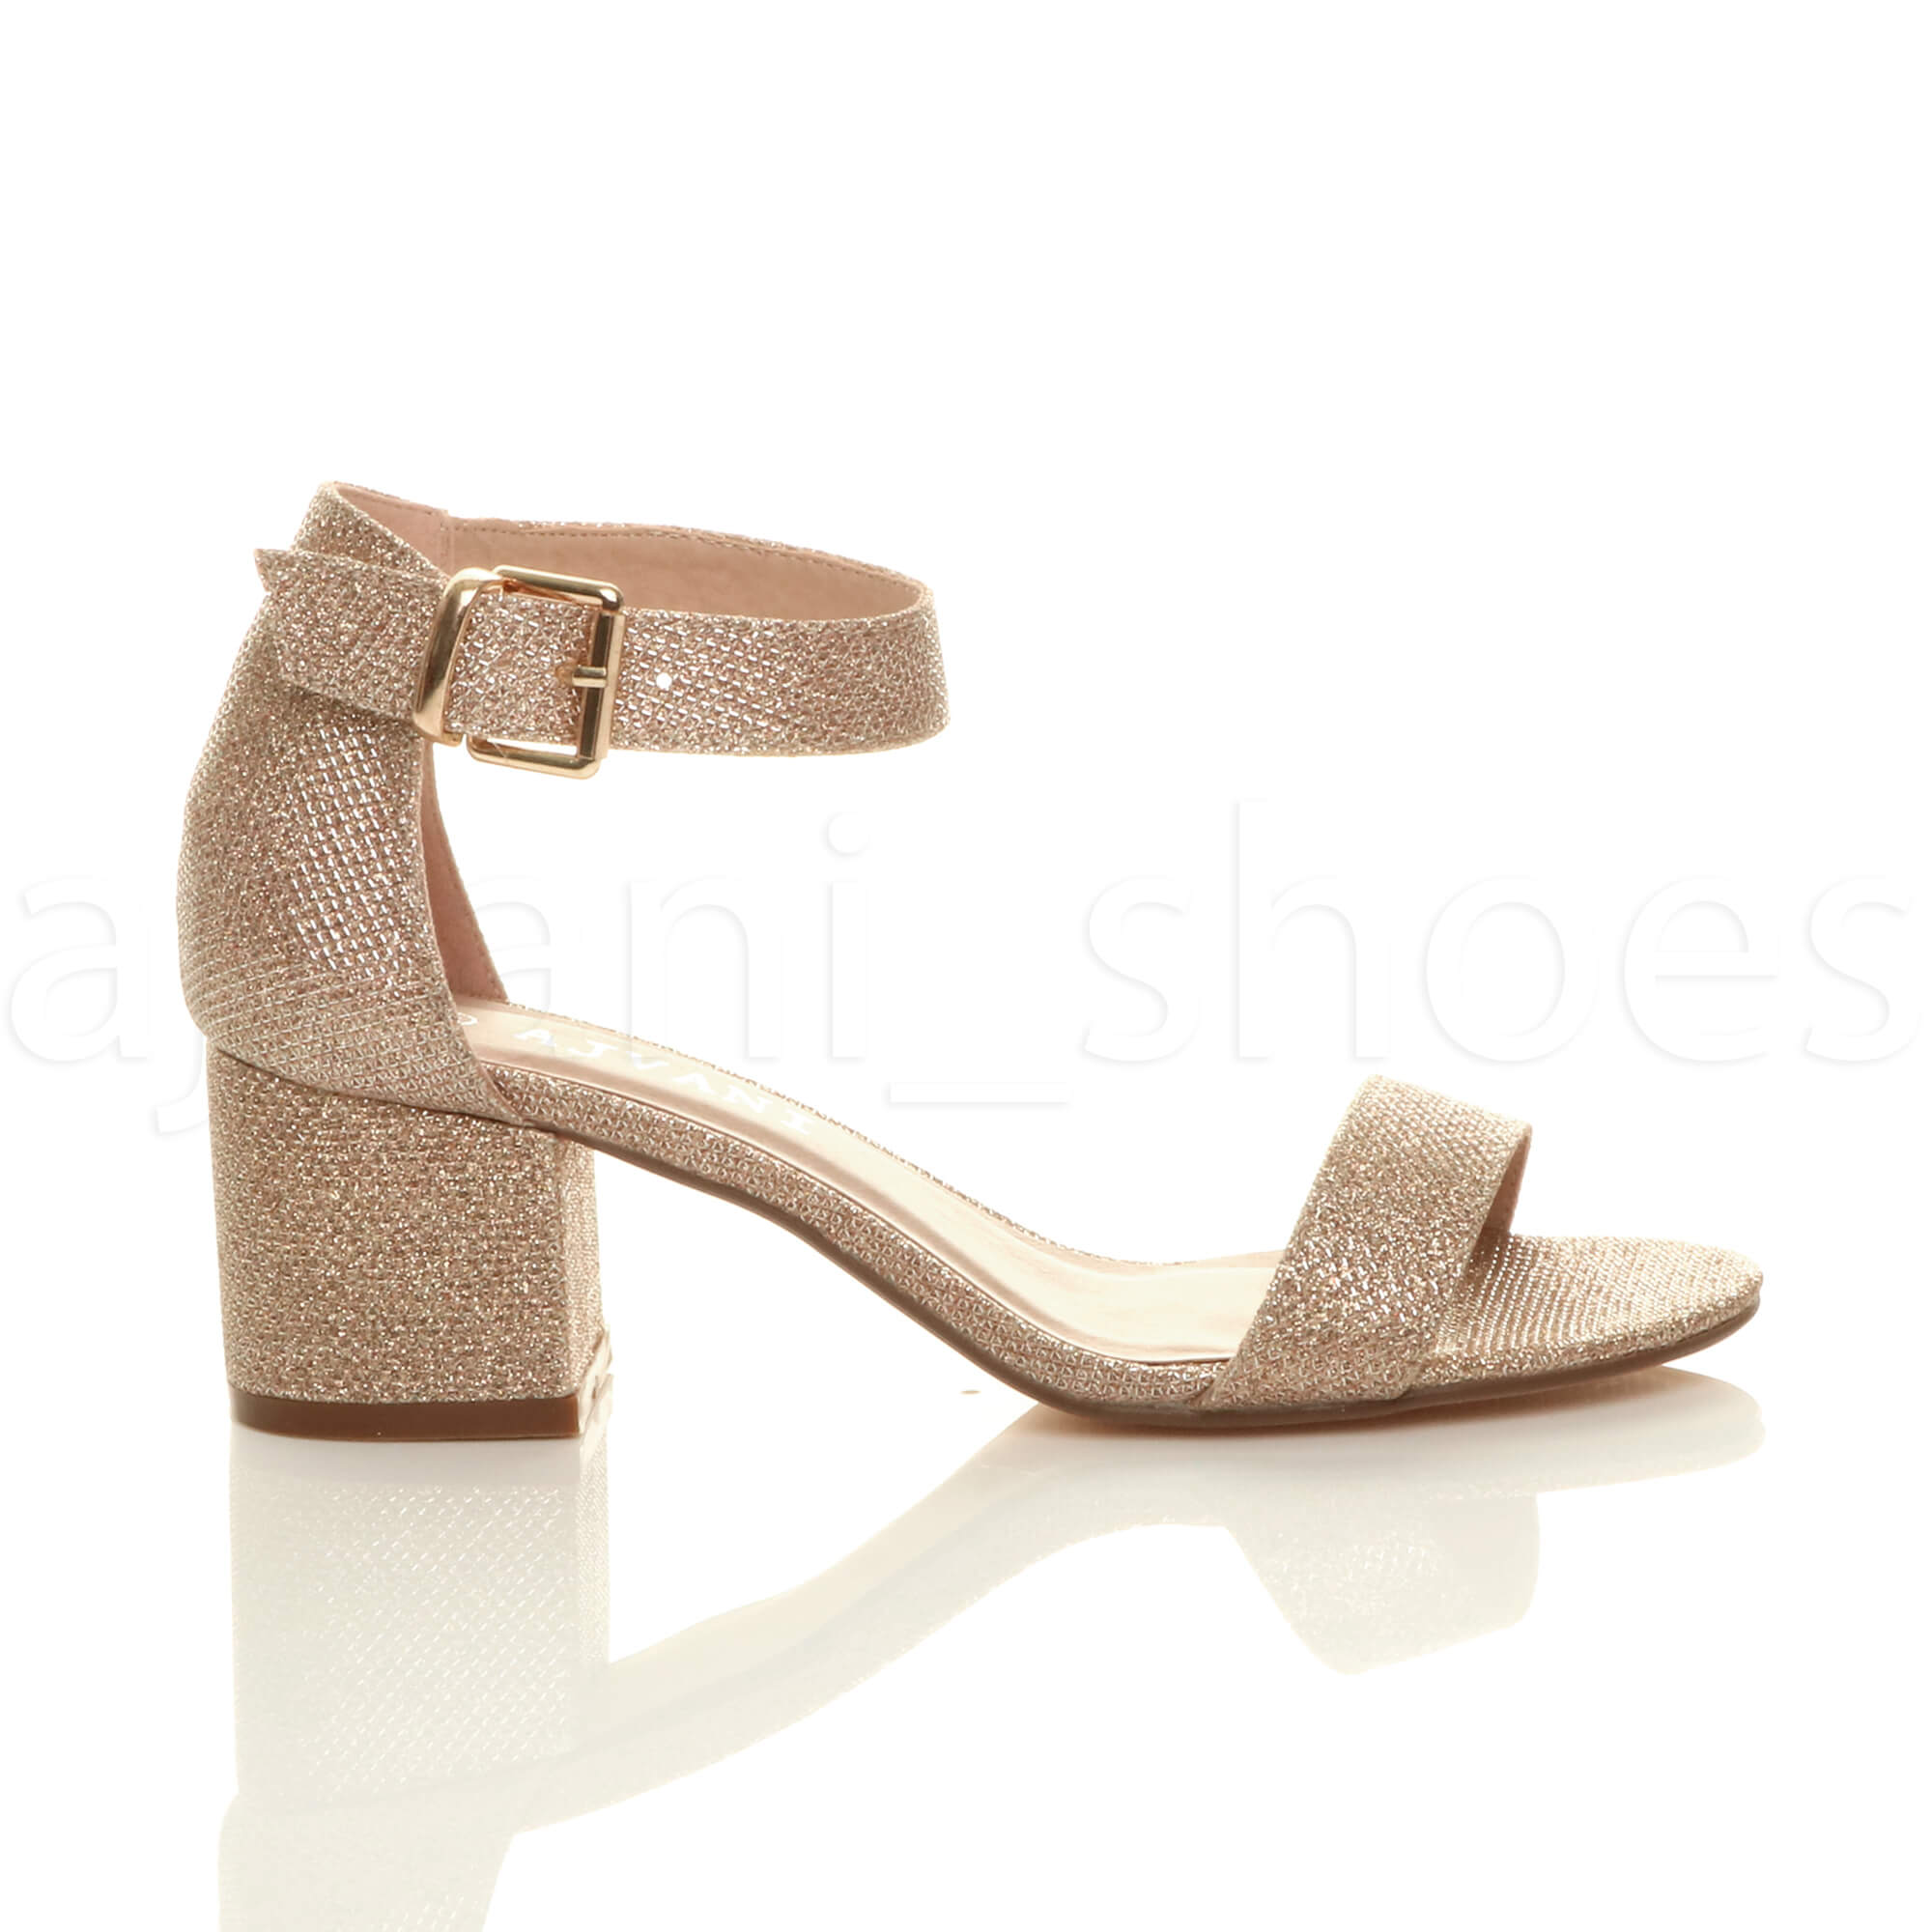 WOMENS-LADIES-LOW-MID-BLOCK-HEEL-ANKLE-STRAP-BUCKLE-PARTY-STRAPPY-SANDALS-SIZE thumbnail 155